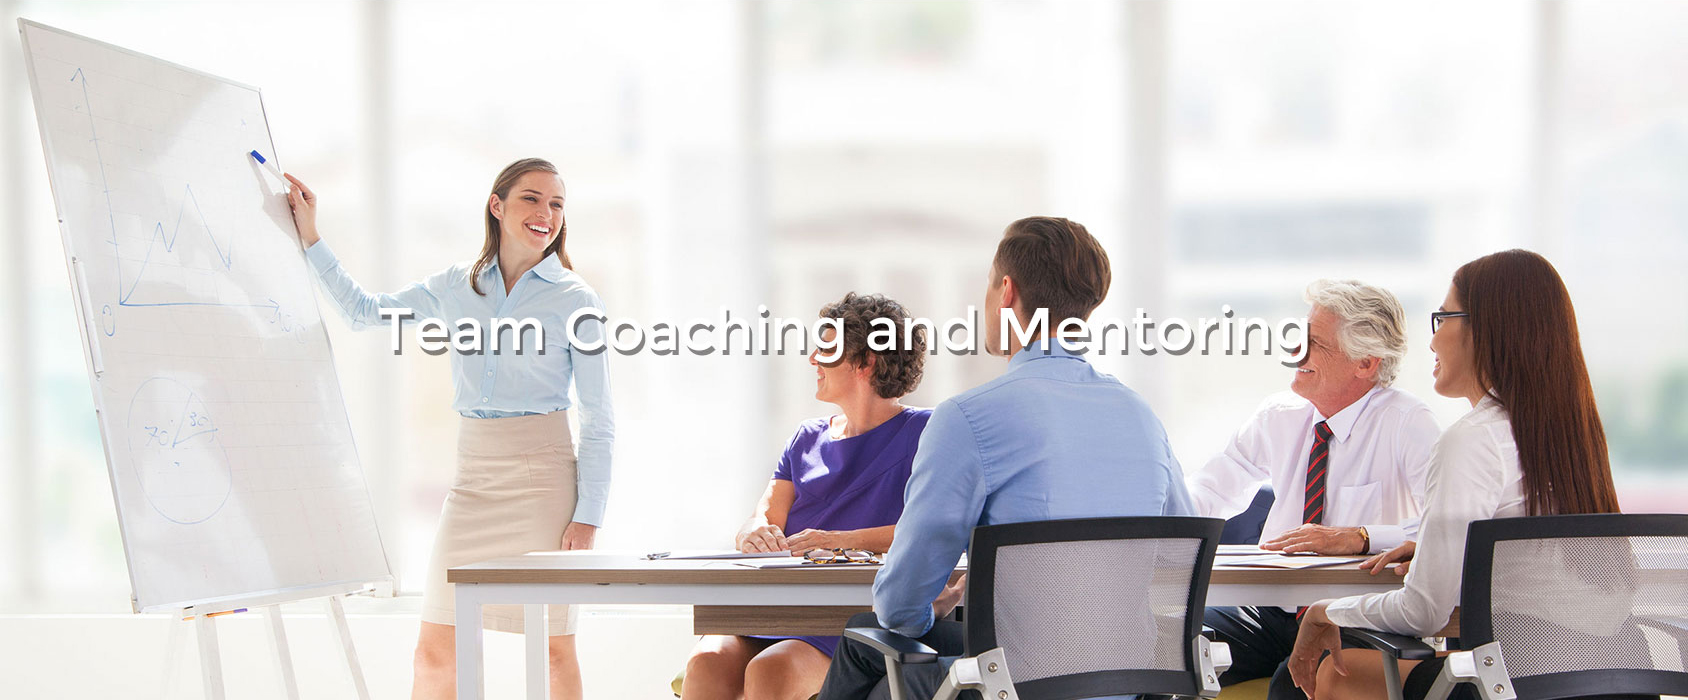 Team Coaching and Mentoring